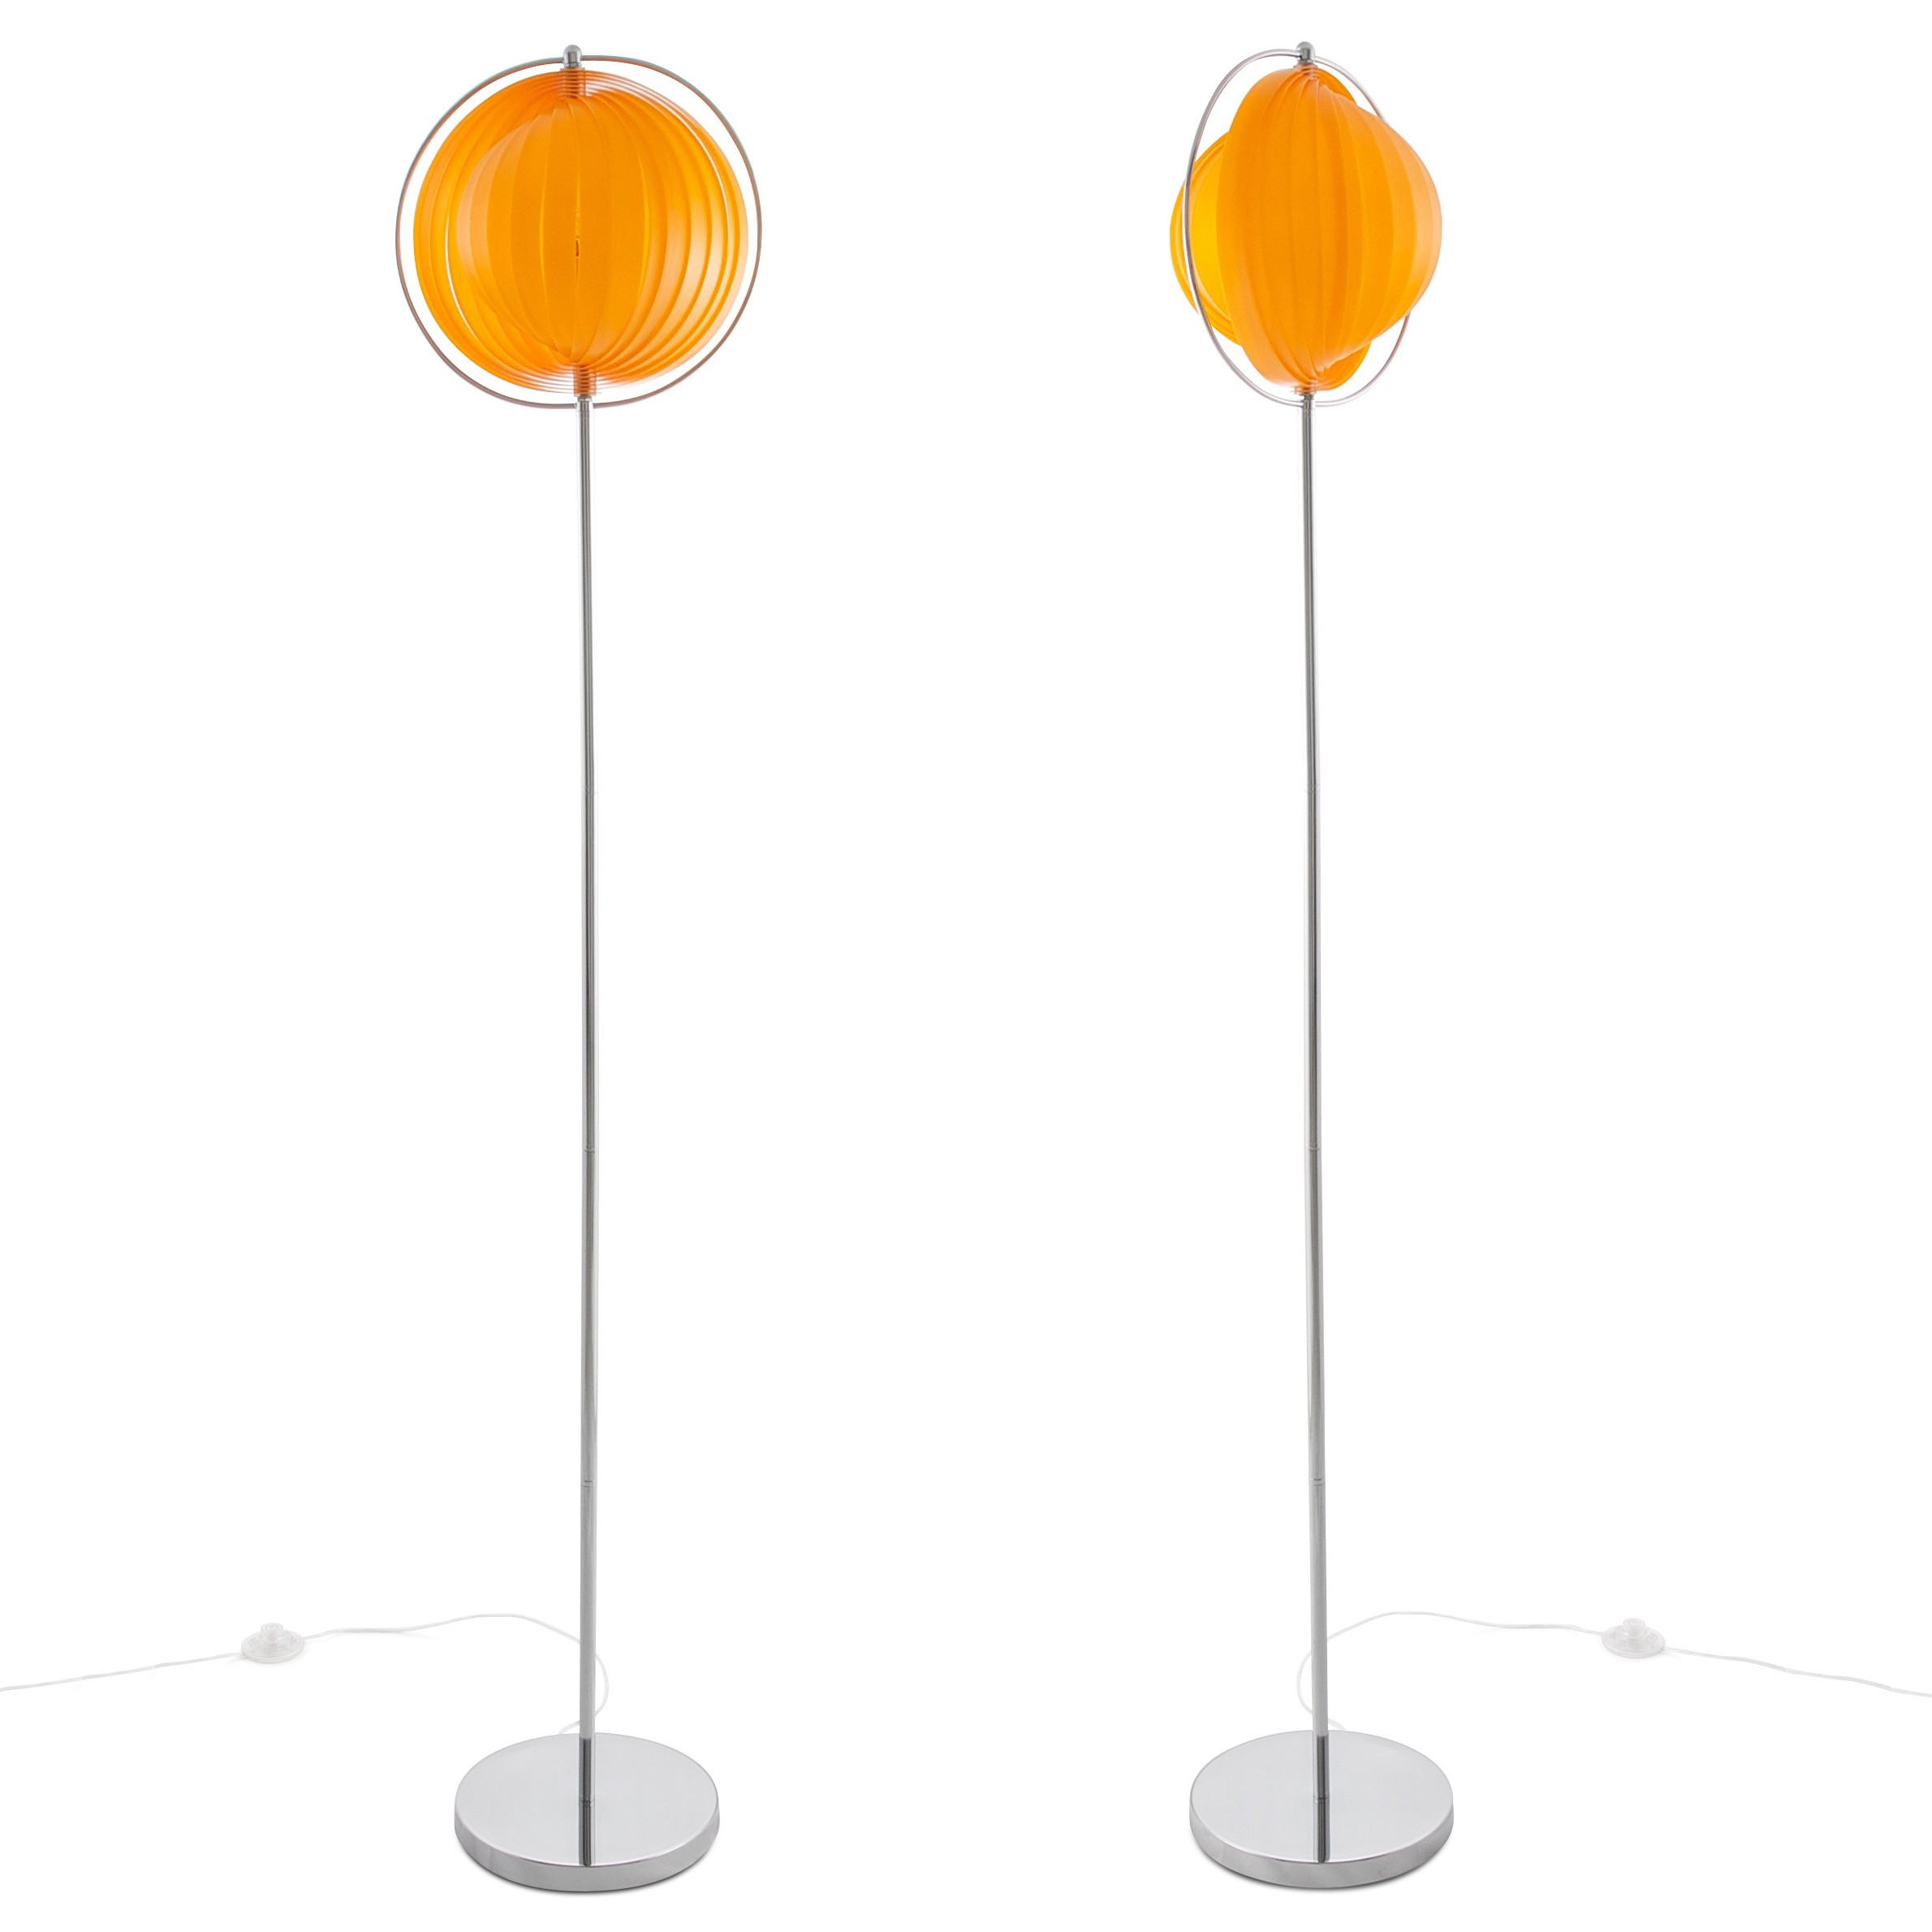 Cagu Design Retro Lounge Stehlampe Stehleuchte Bola Orange